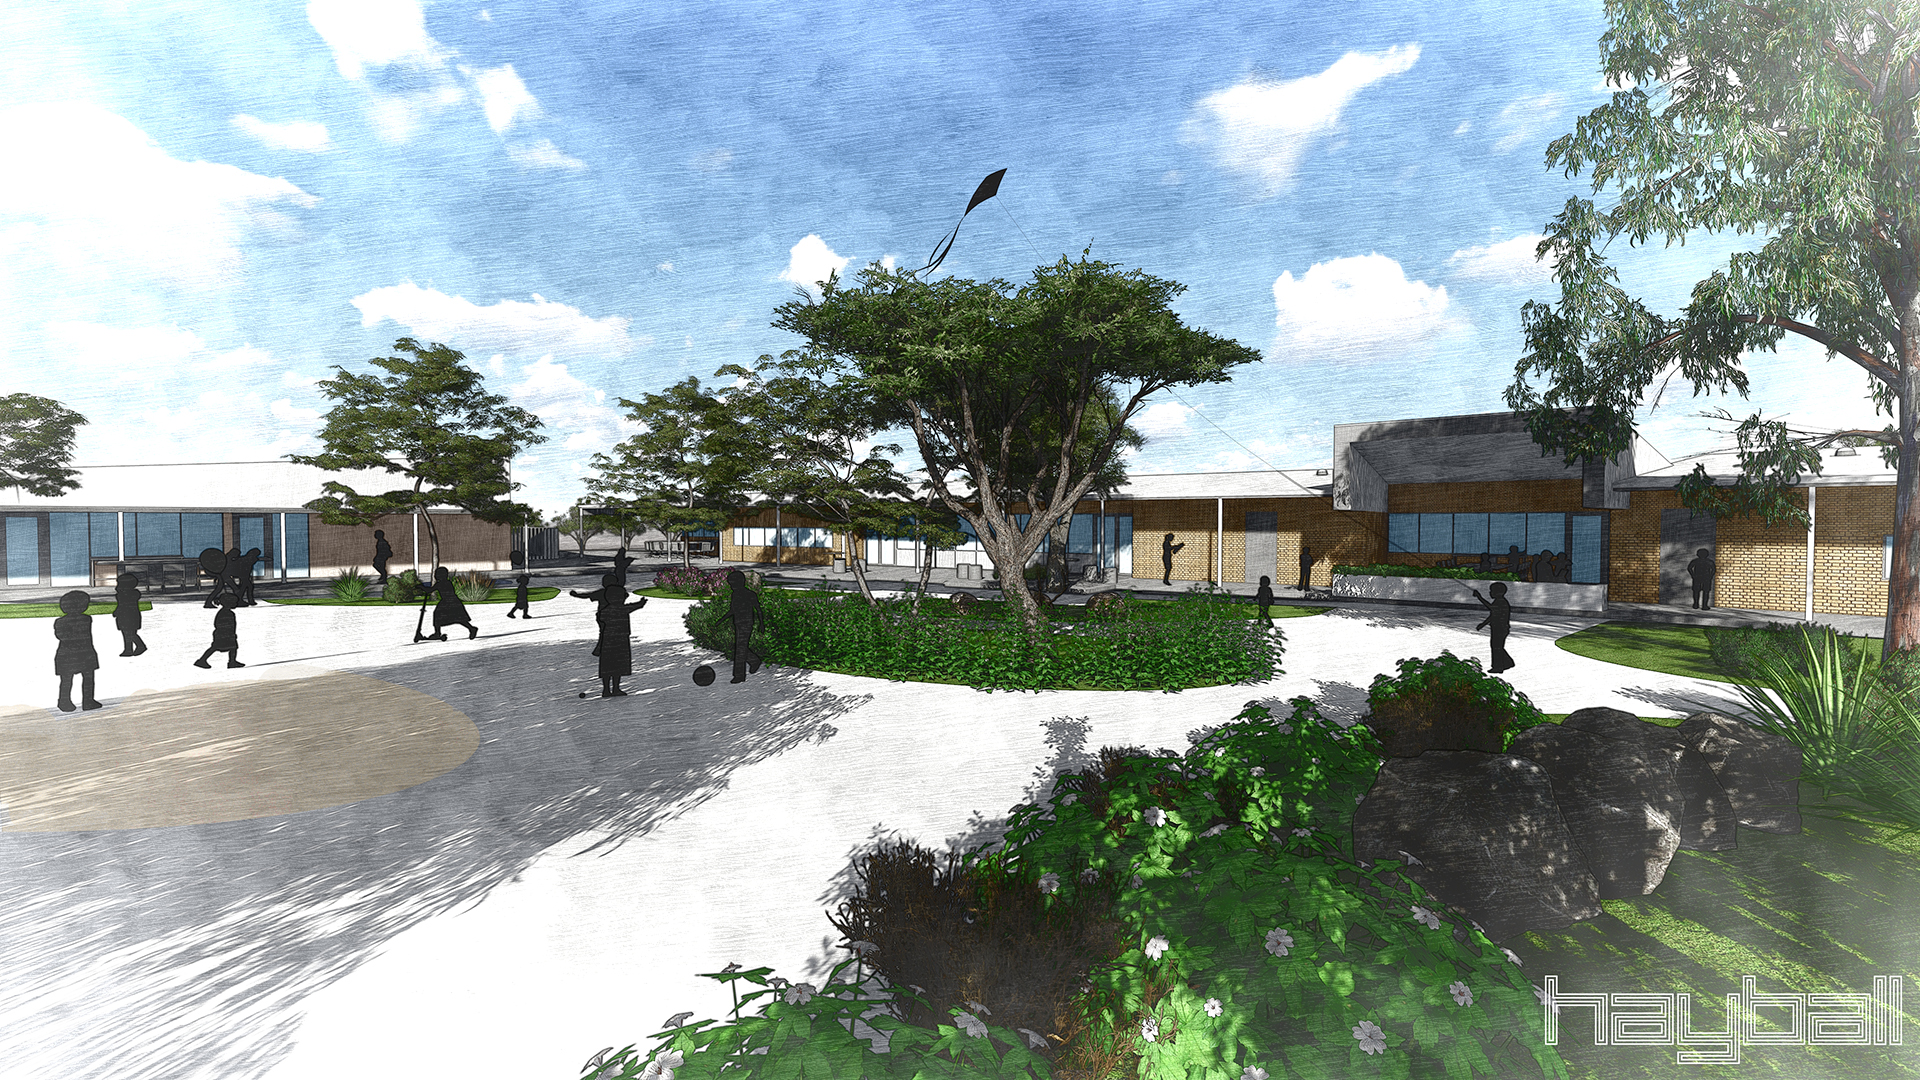 Artist rendering of the school's play area